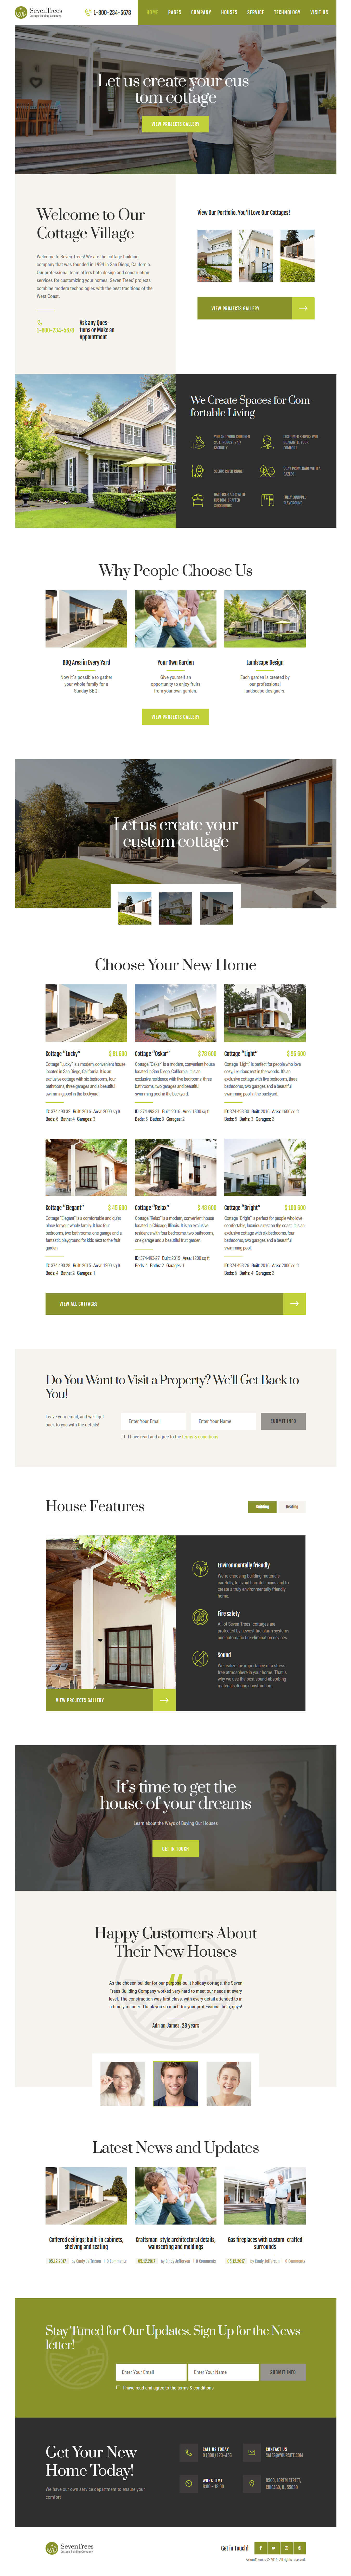 SevenTrees - Best Premium Home Rental and Property WordPress Theme